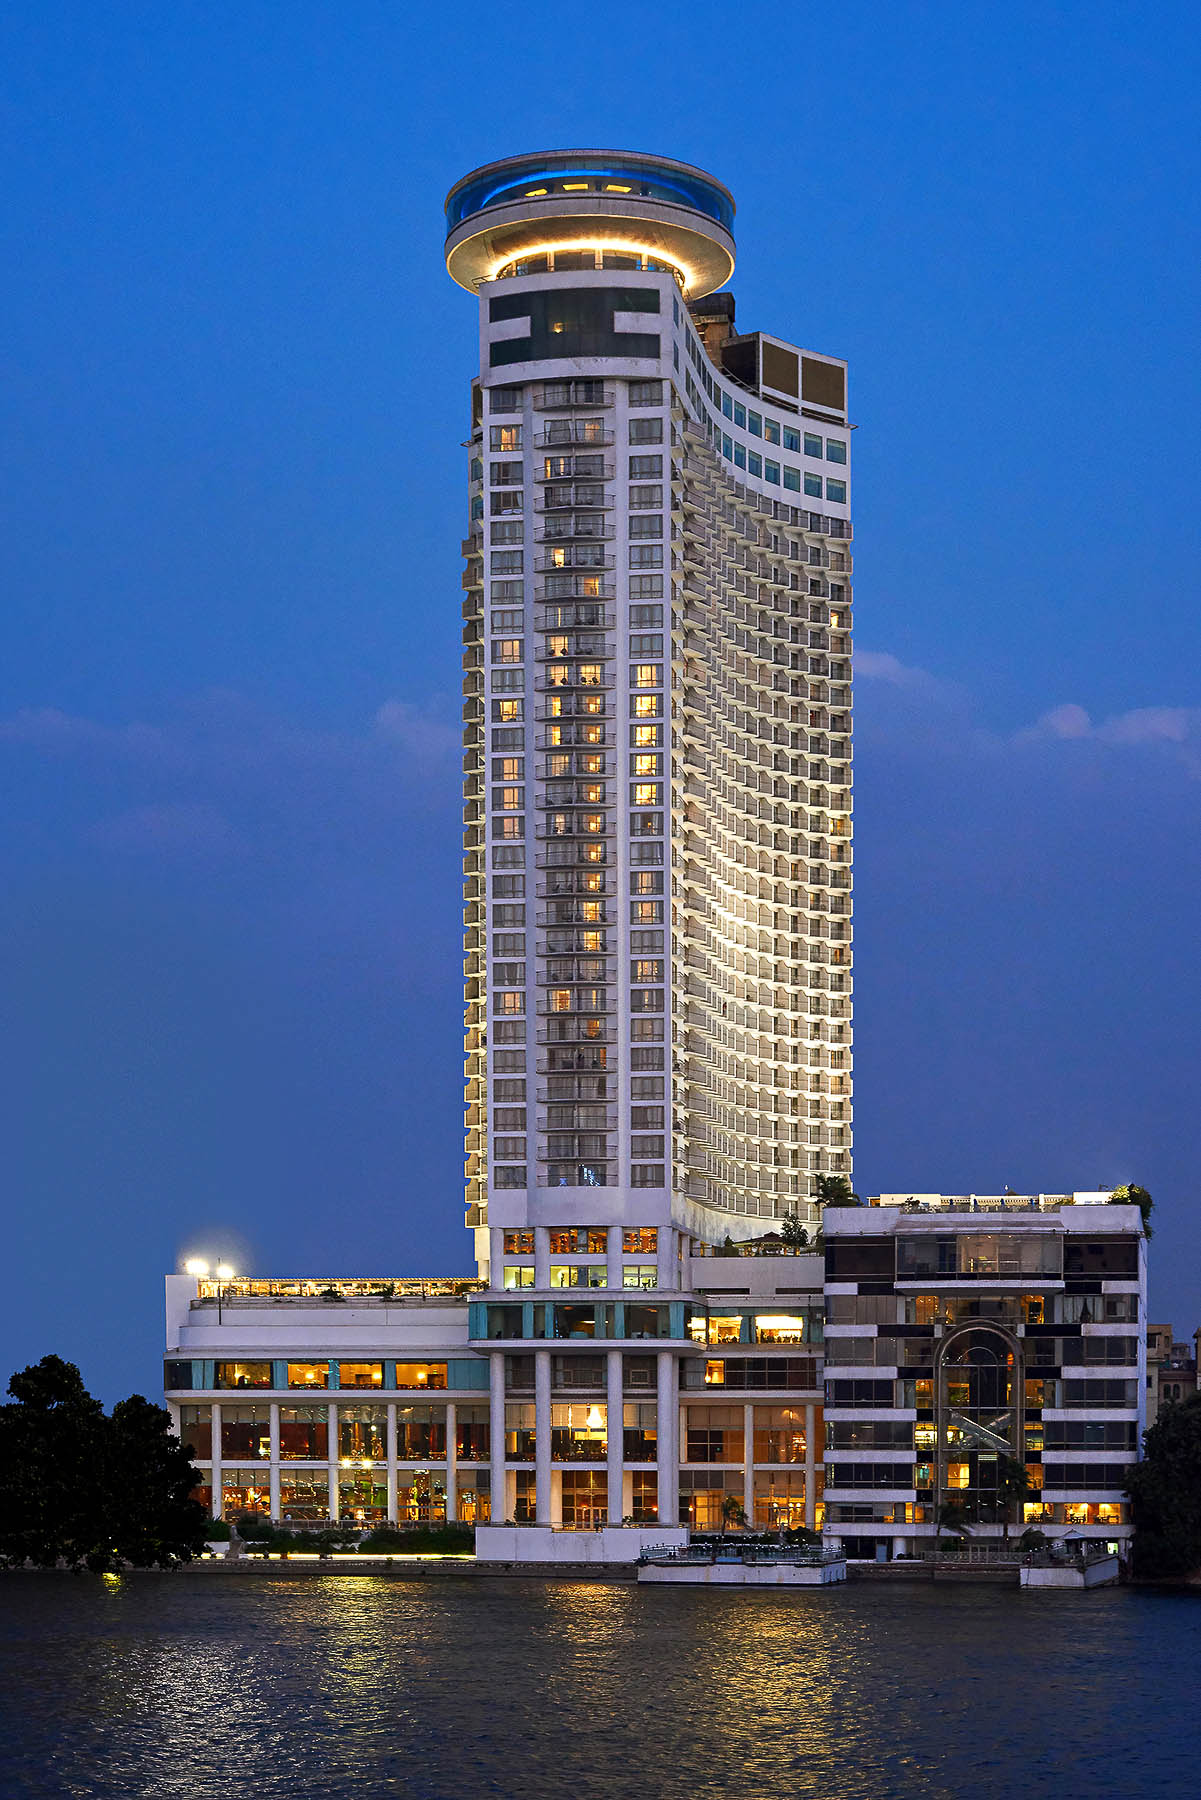 Grand Nile tower - Facade - Blue hour